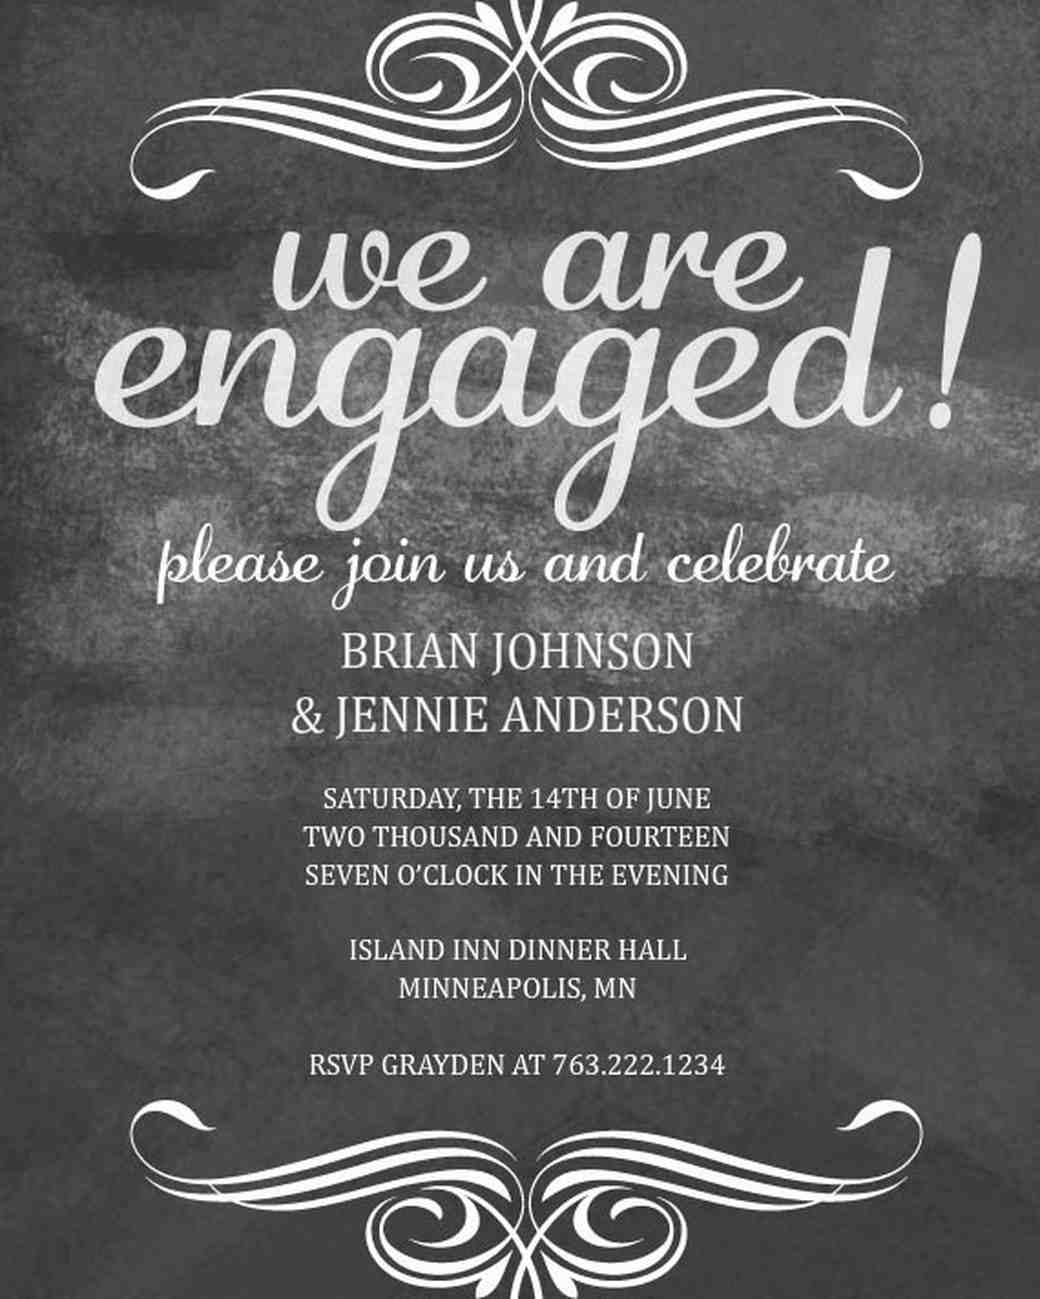 paperless engagement party invites  martha stewart weddings, invitation samples